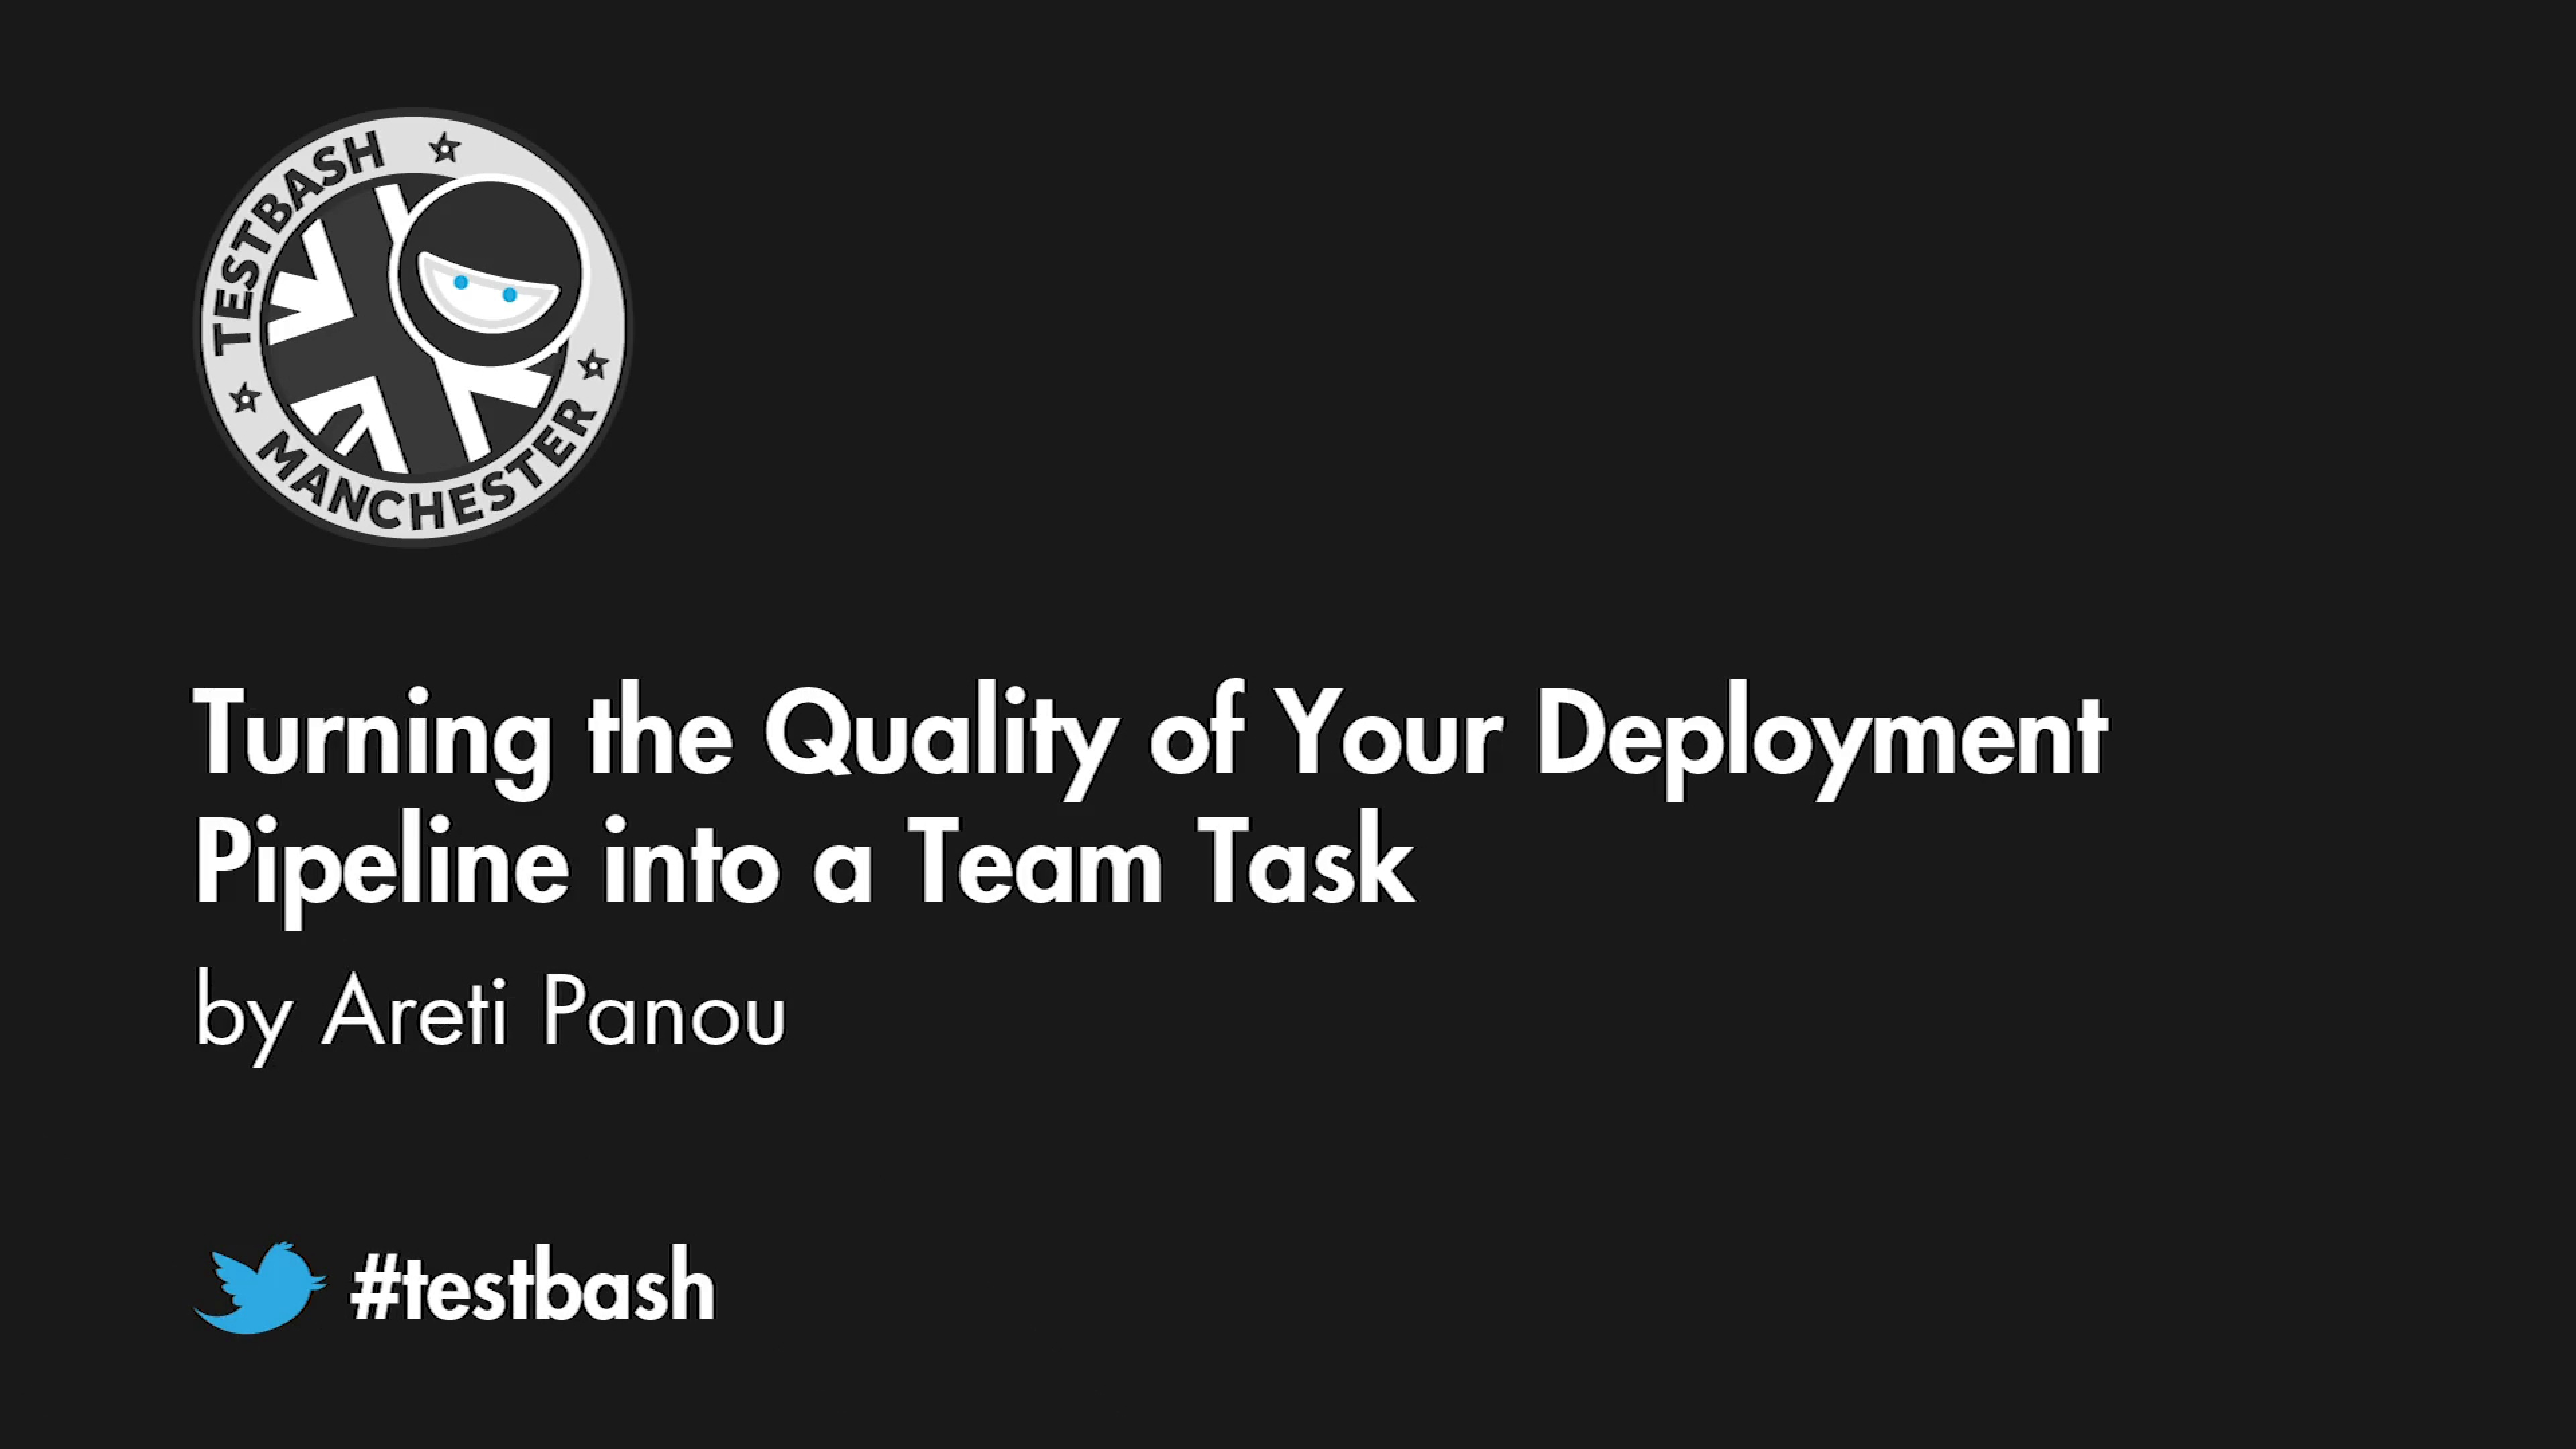 Turning the Quality of Your Deployment Pipeline into a Team Task - Areti Panou